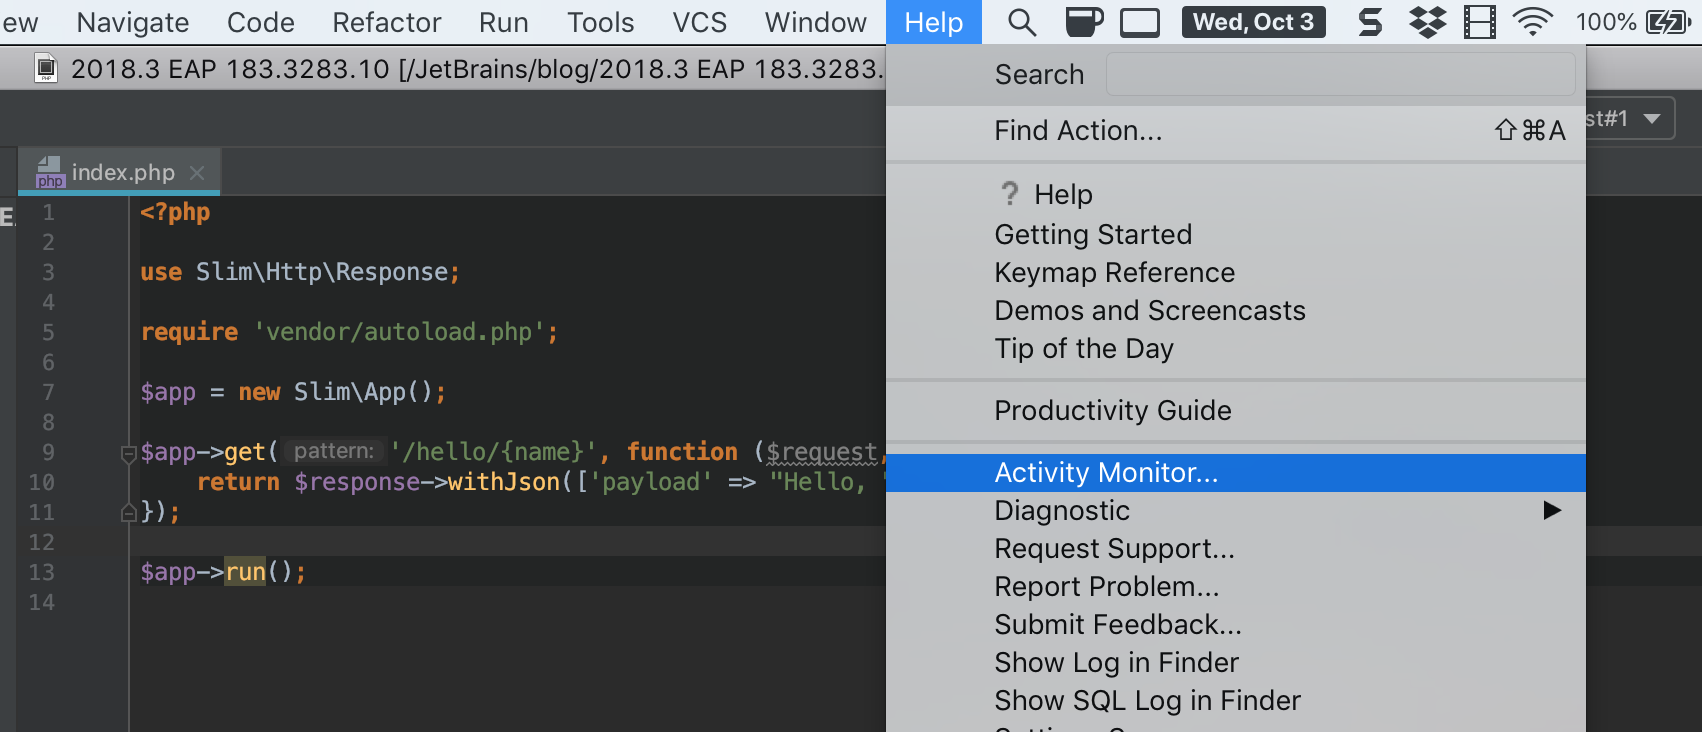 activity_monitor_menu